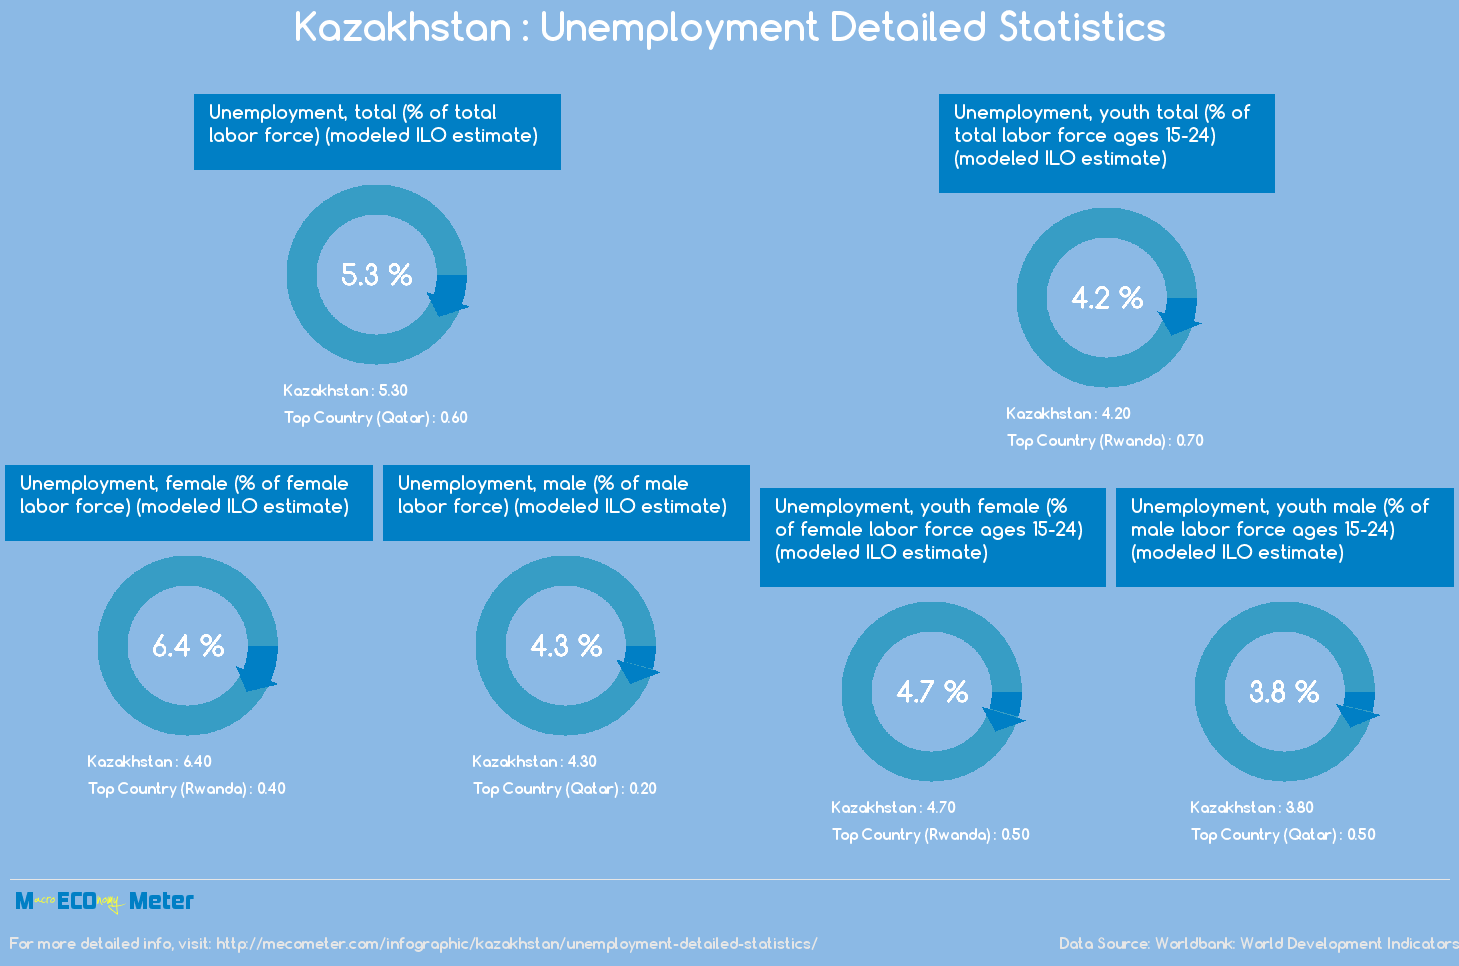 Kazakhstan : Unemployment Detailed Statistics